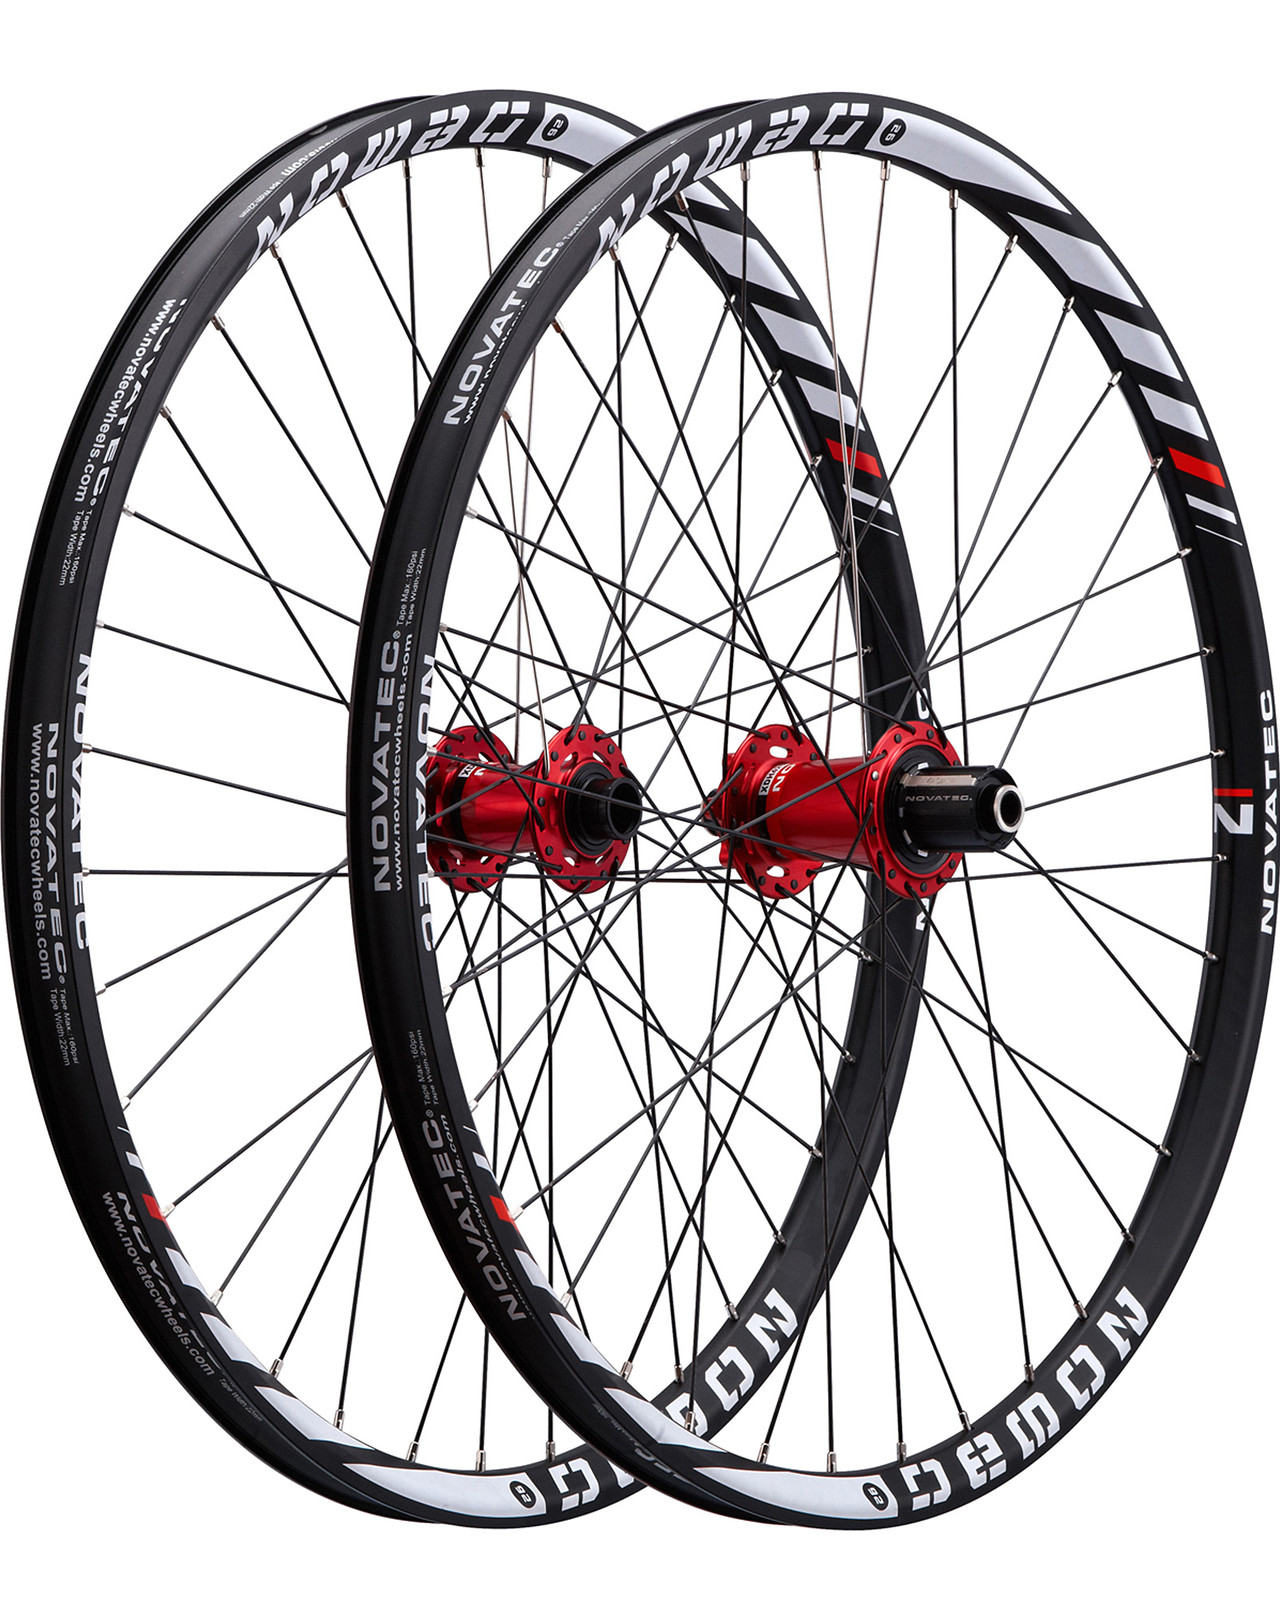 Novatec Demon Complete Wheelset demon